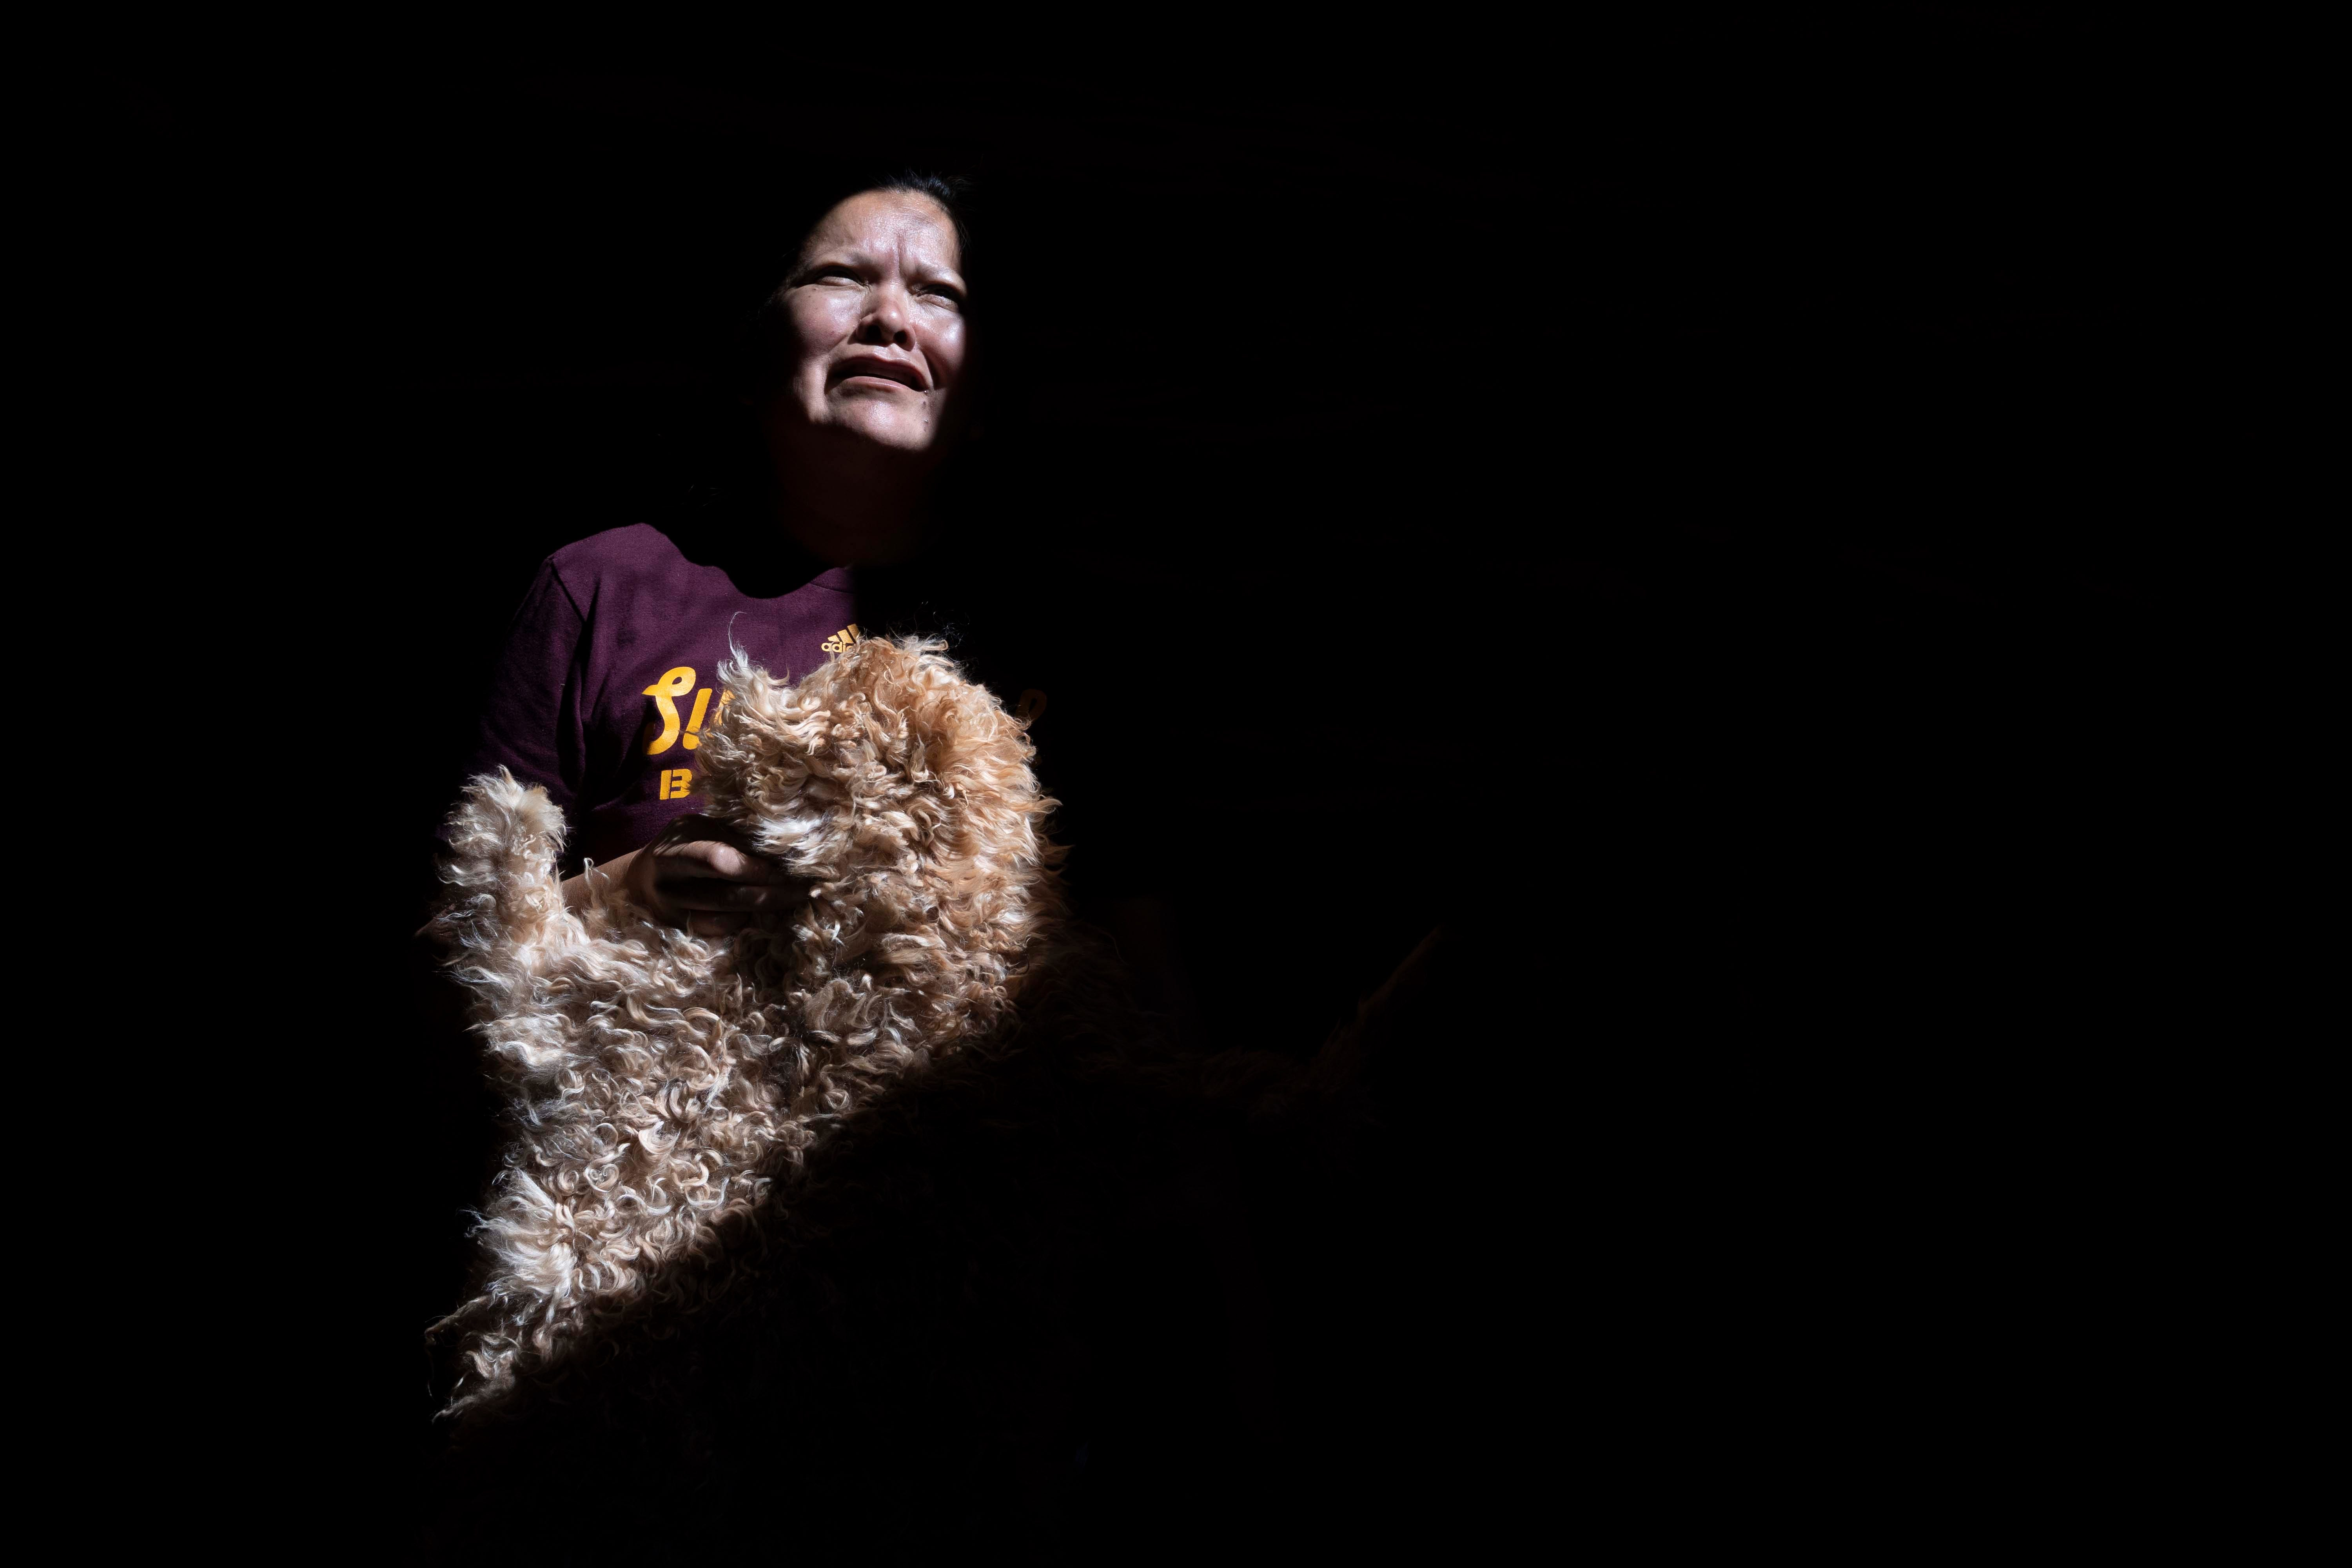 Elvina Holiday, 40, holds a sheepskin beside her family's home in Monument Valley on the Navajo Nation. Her family's primary business was tourism, including leading visitors on horse tours. With the coronavirus keeping visitors away, their business is at a standstill.